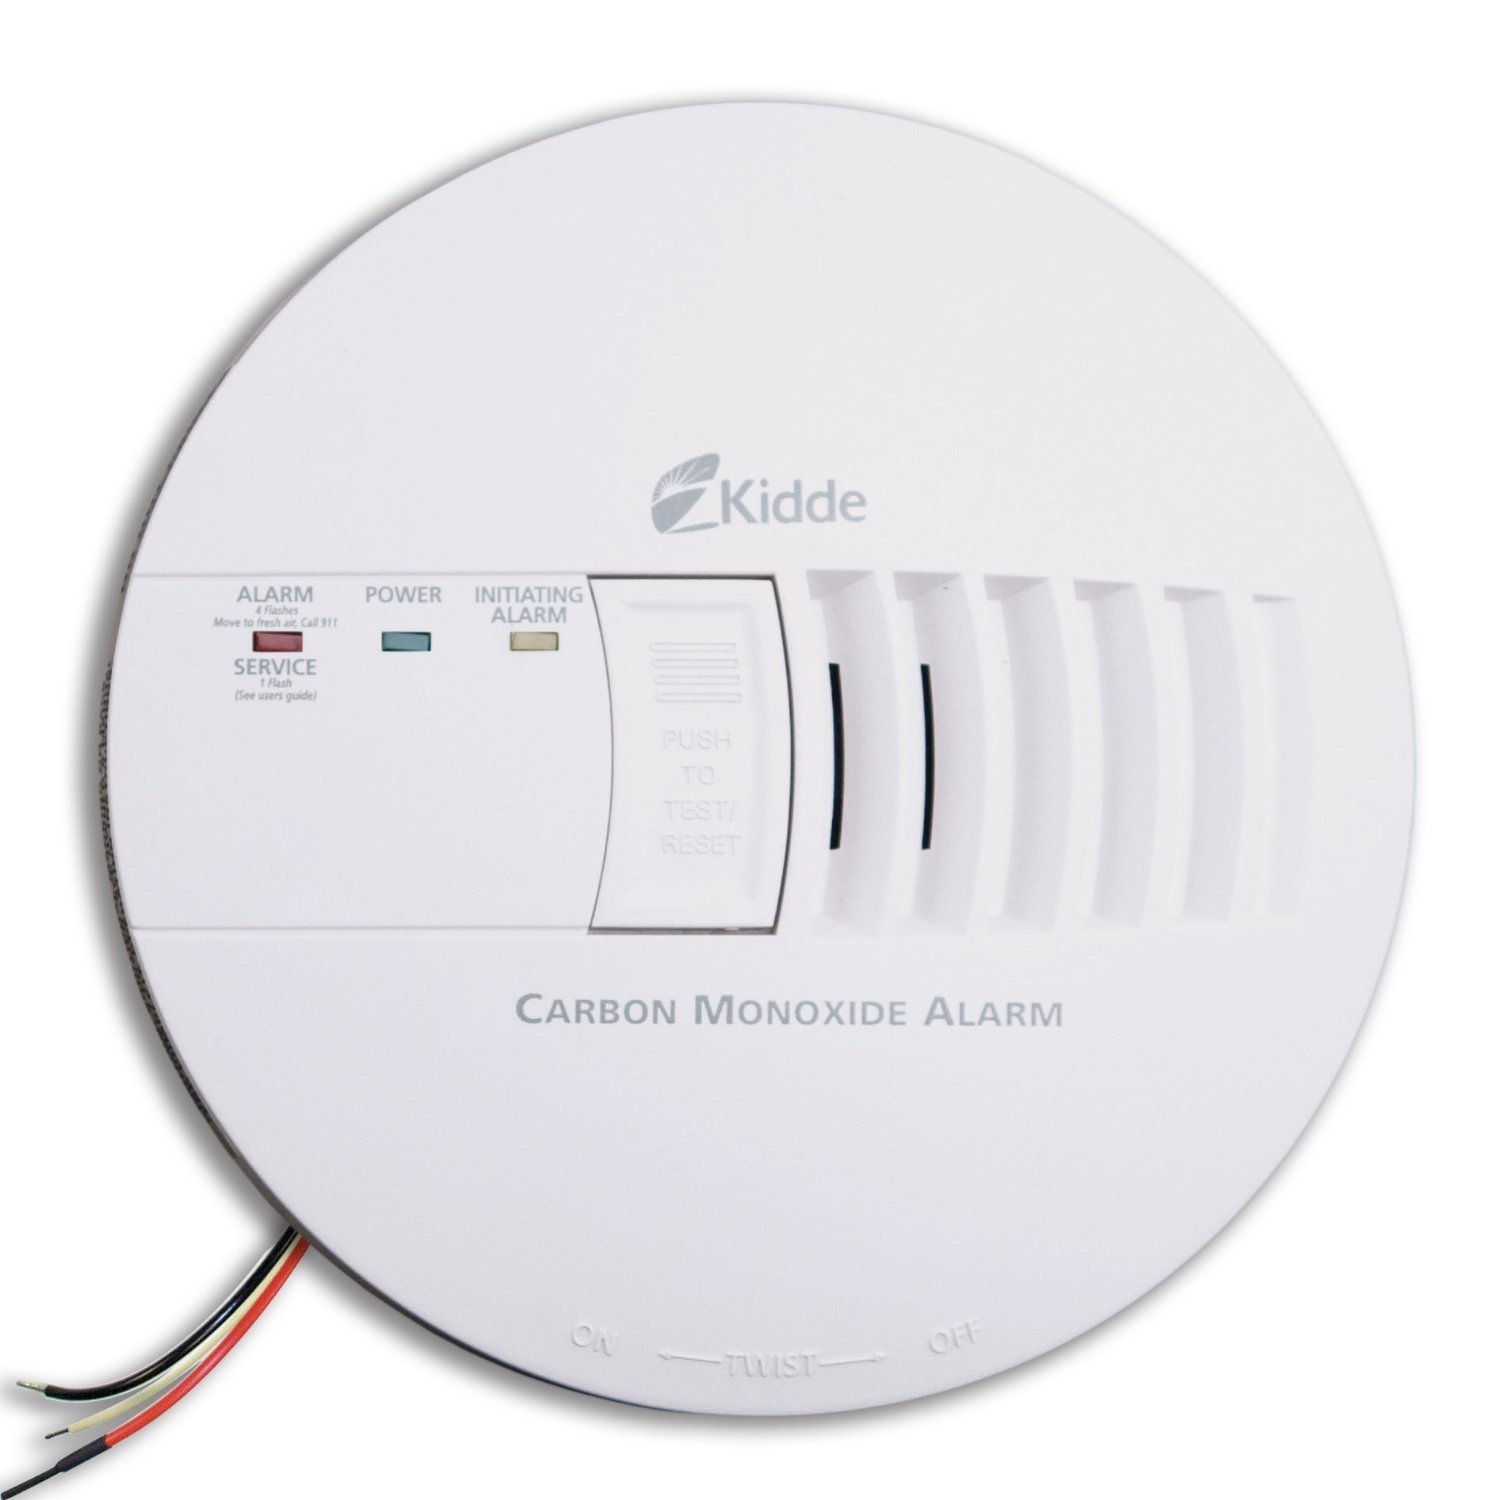 Kidde KN-COB-IC Hardwire Carbon Monoxide Alarm with Battery Backup, Interconnectable (4 Pack) by Kidde